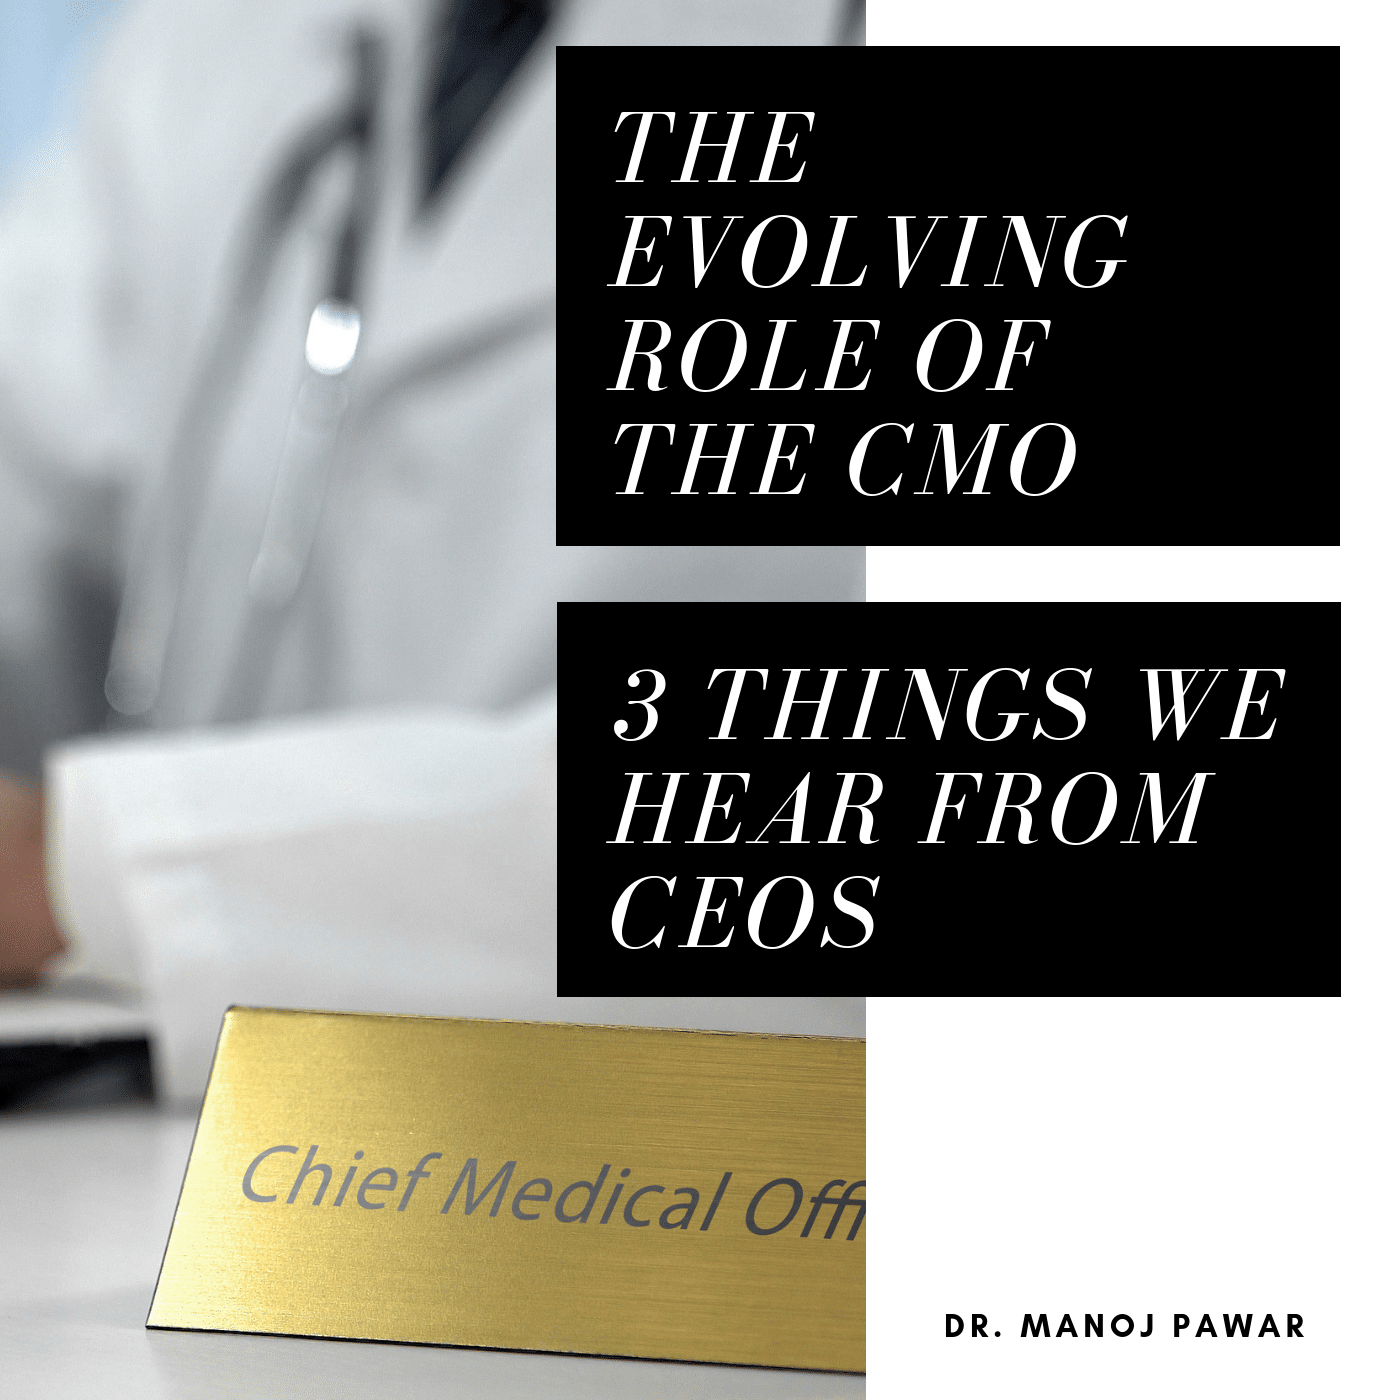 The evolving role of the CMO